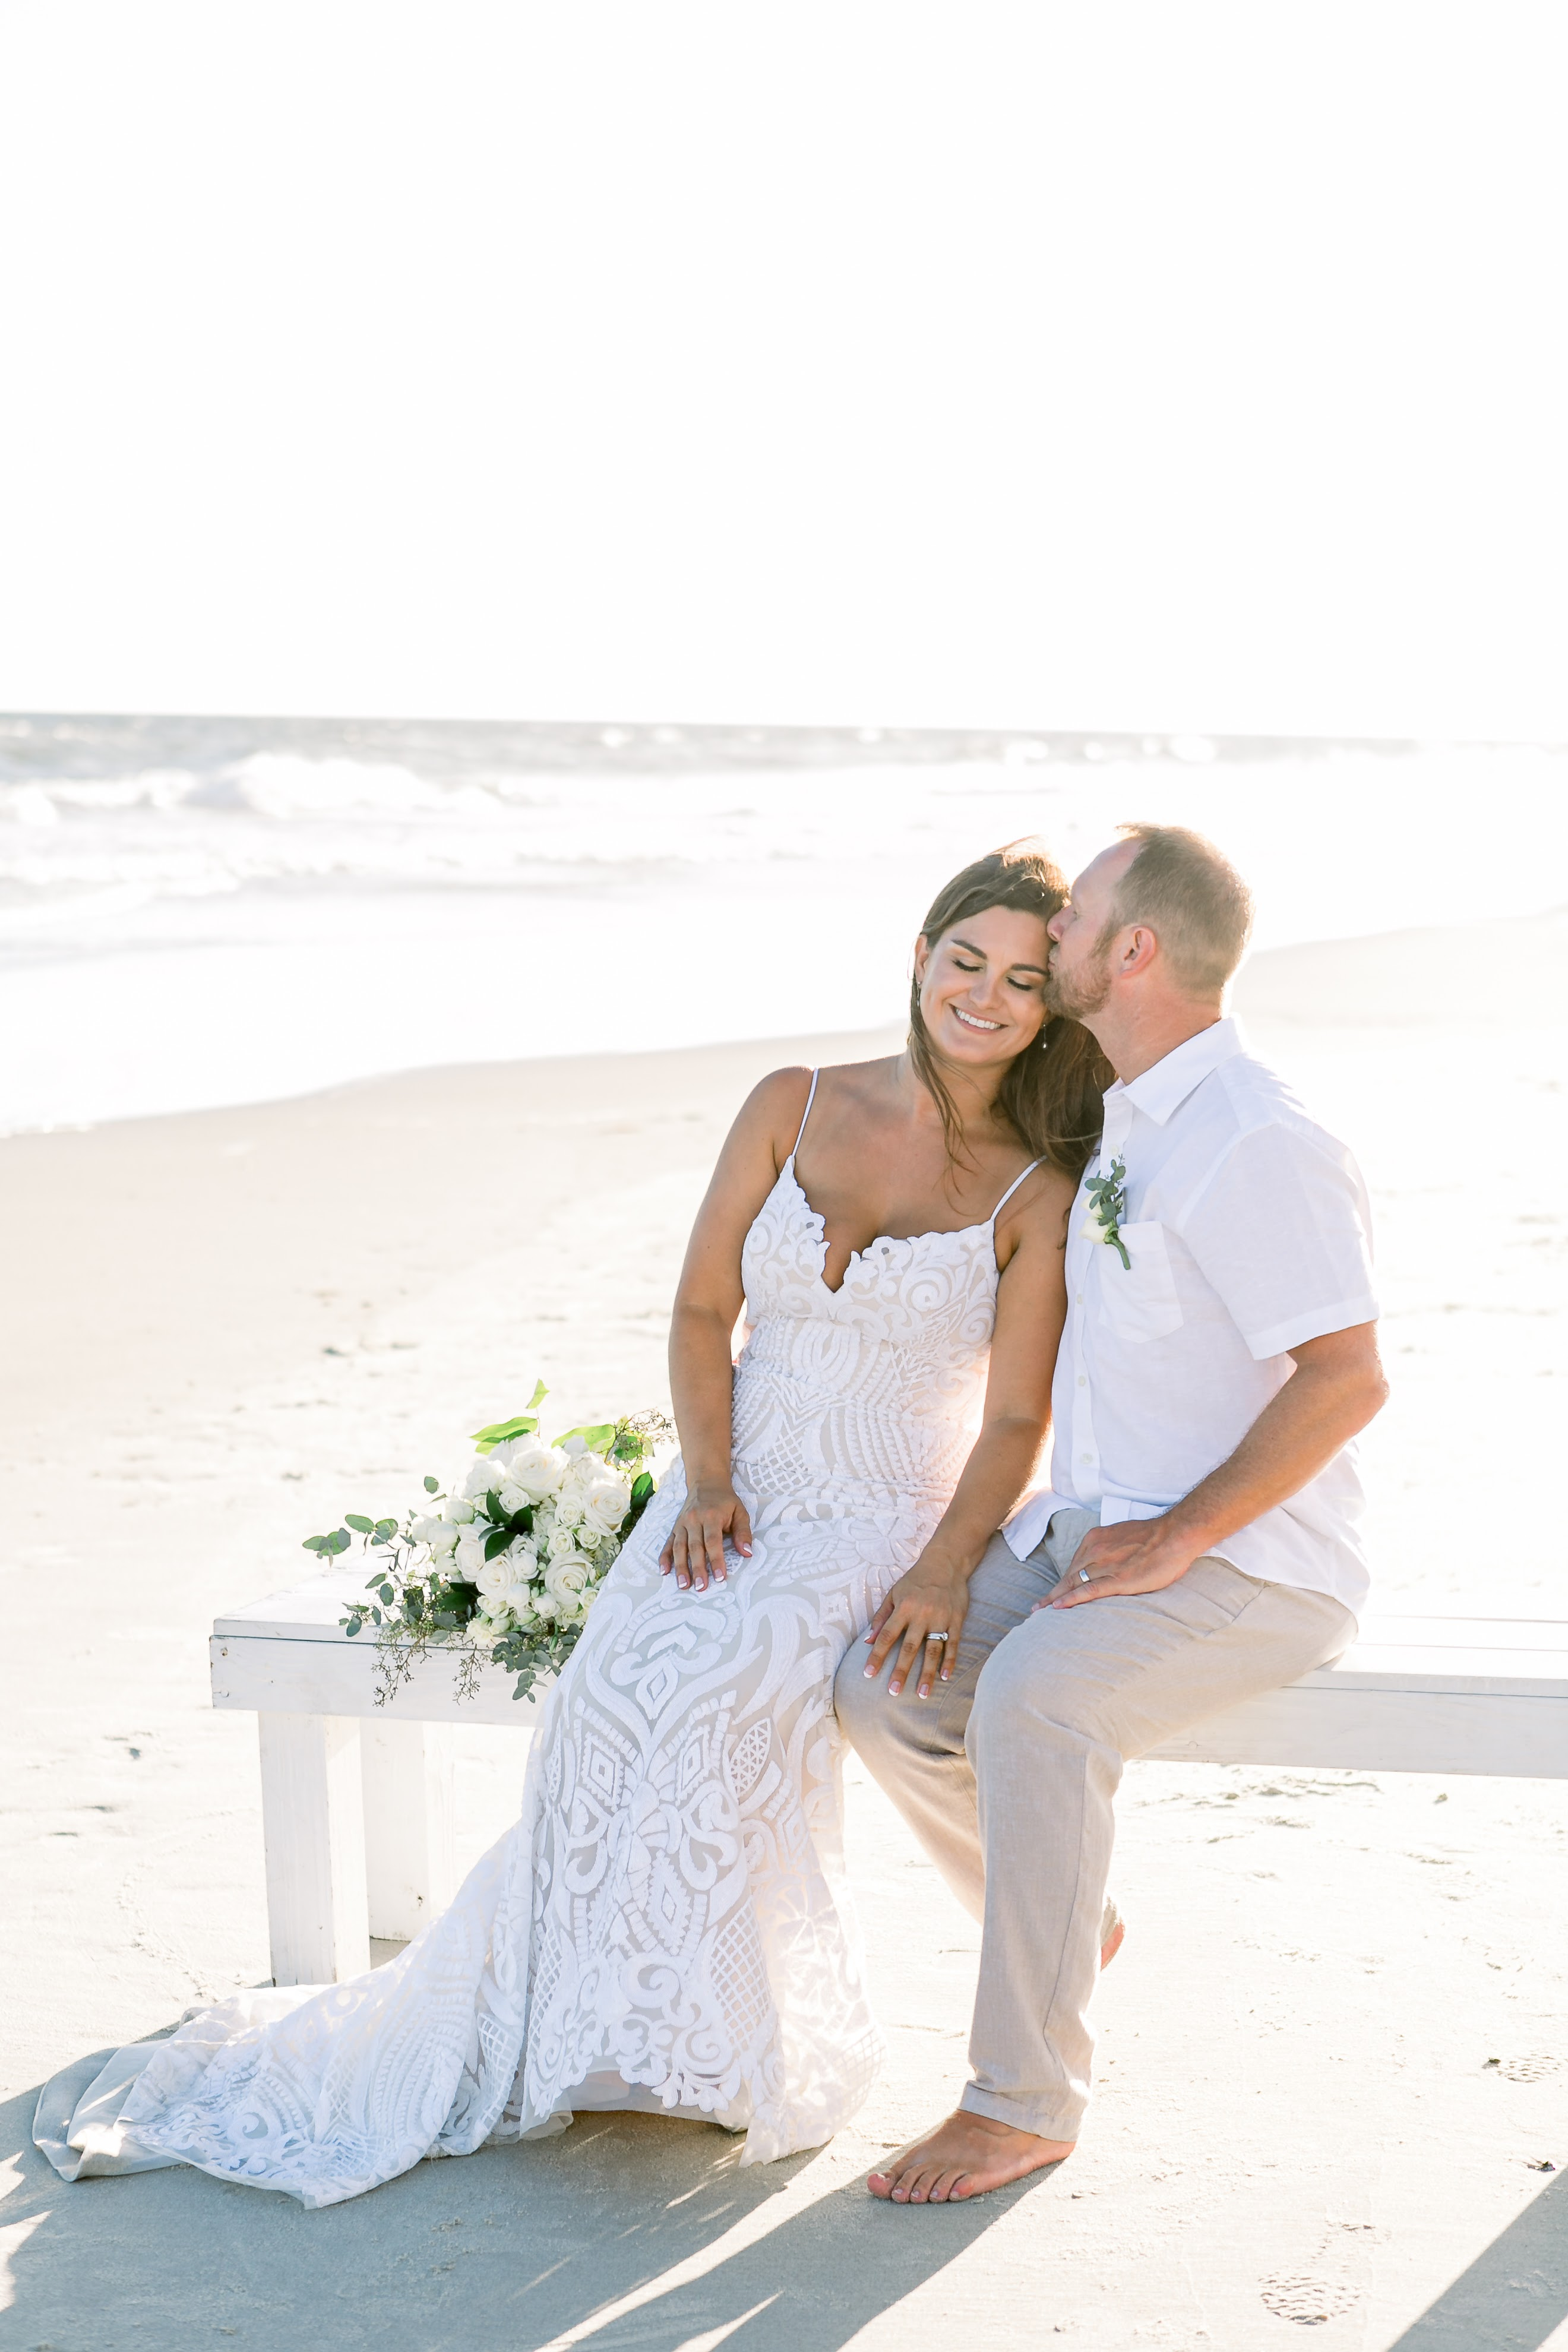 KMI Couple sitting on bench at Oak Island NC Beach Elopement Wedding at the beach